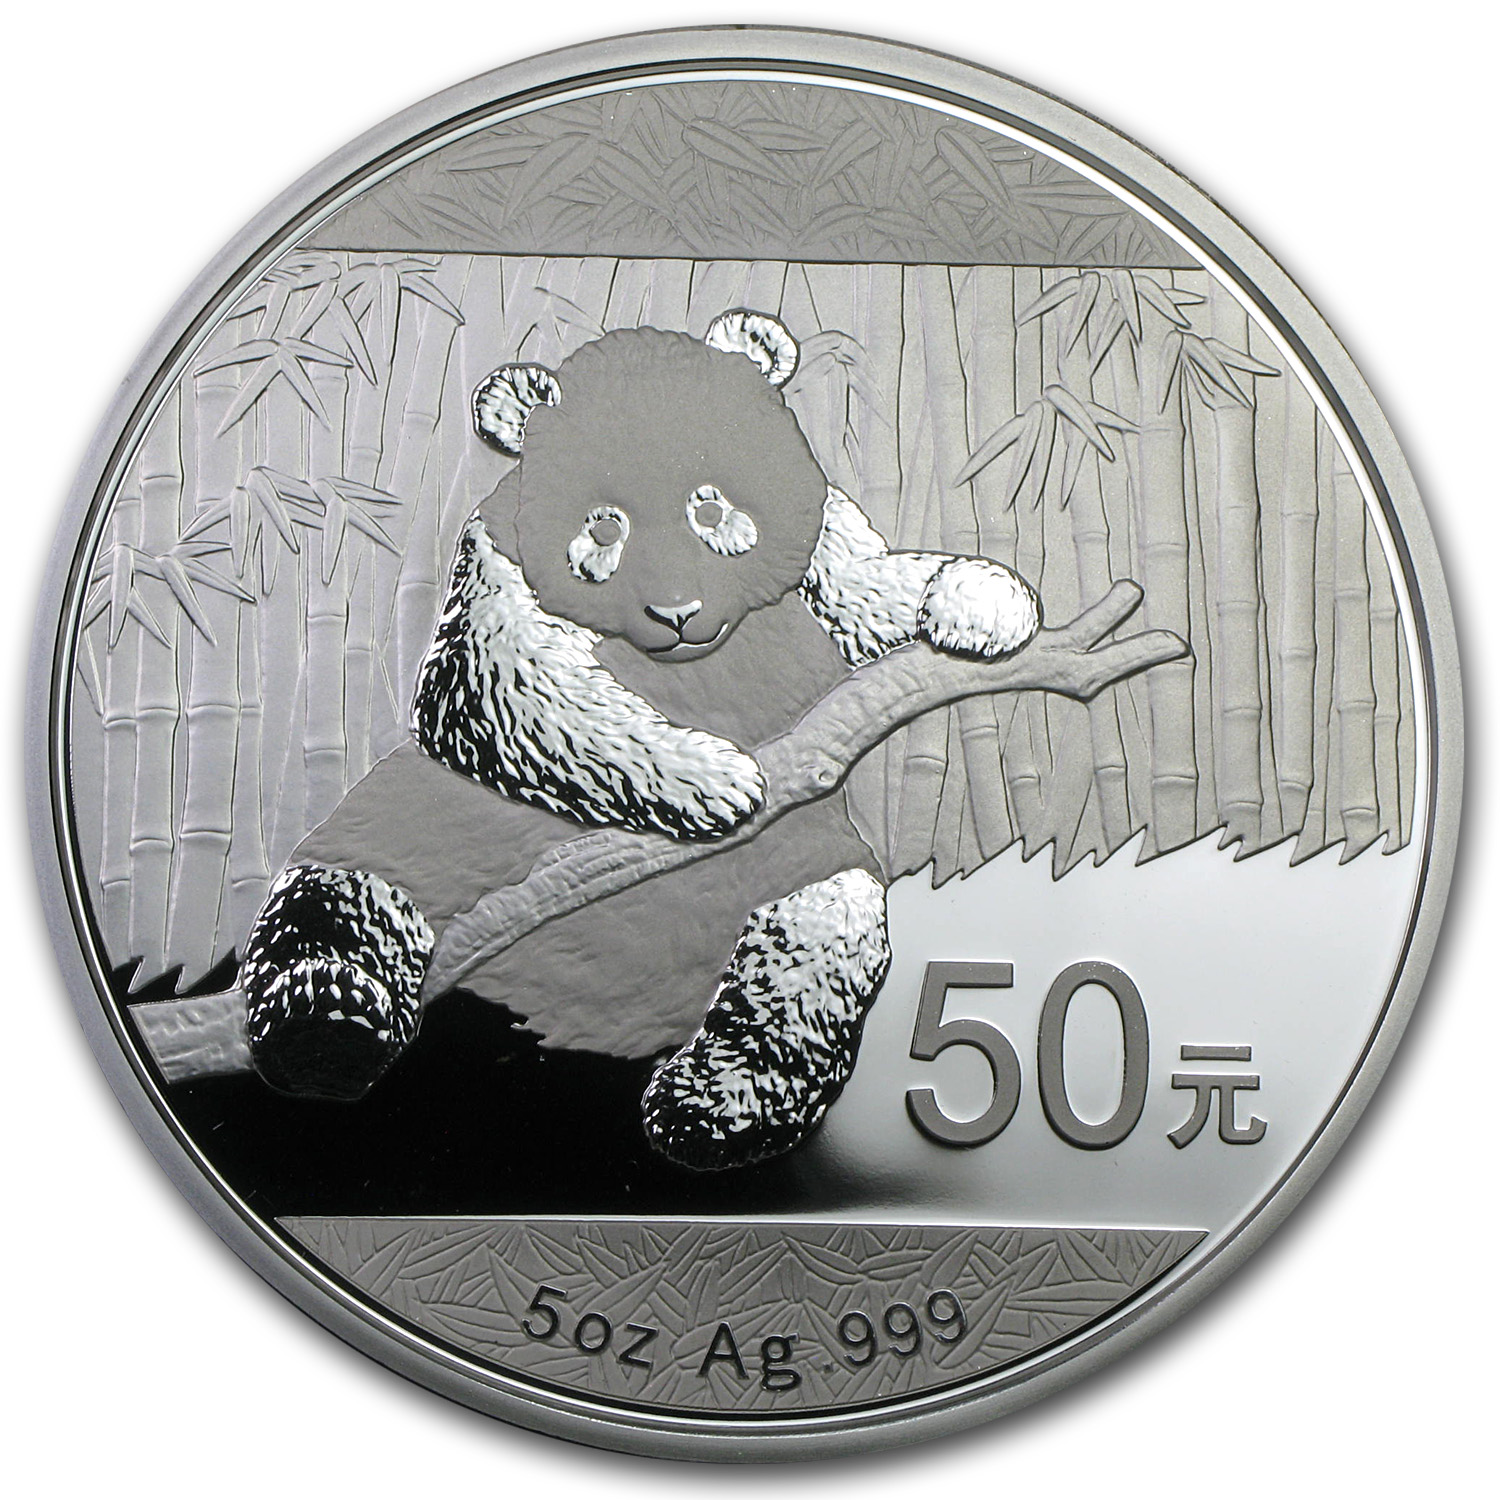 2014 China 5 oz Silver Panda Proof (w/Box & COA)